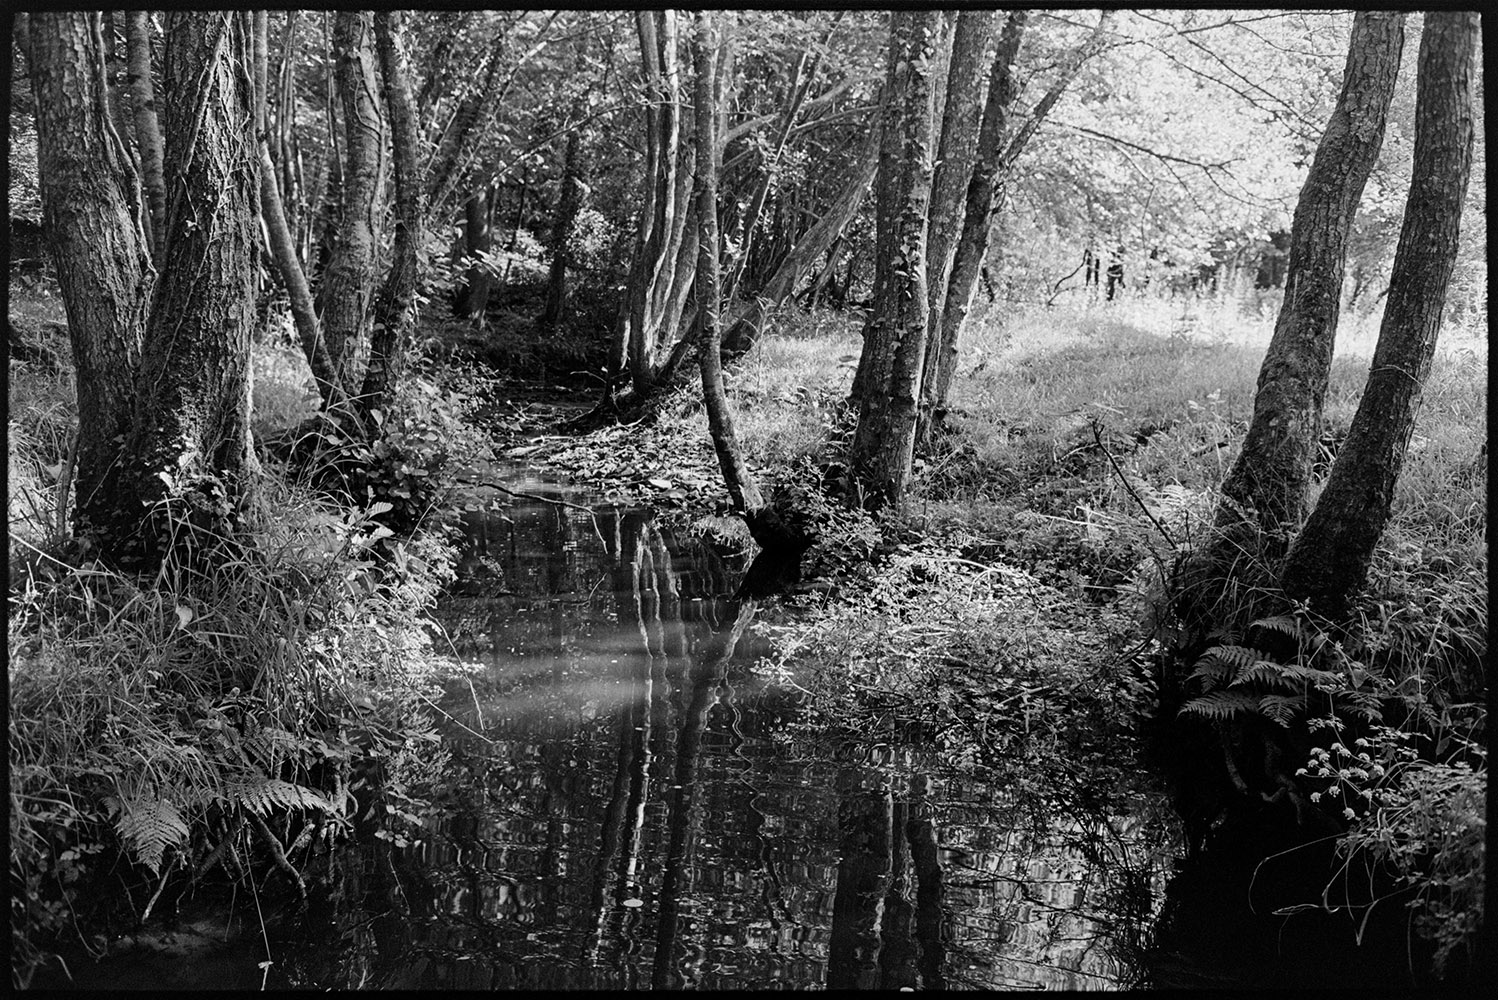 Stream with trees, overhanging vegetation, reflections, Dolton, Buds Mill, May 1982. Documentary photograph by James Ravilious for the Beaford Archive © Beaford Arts